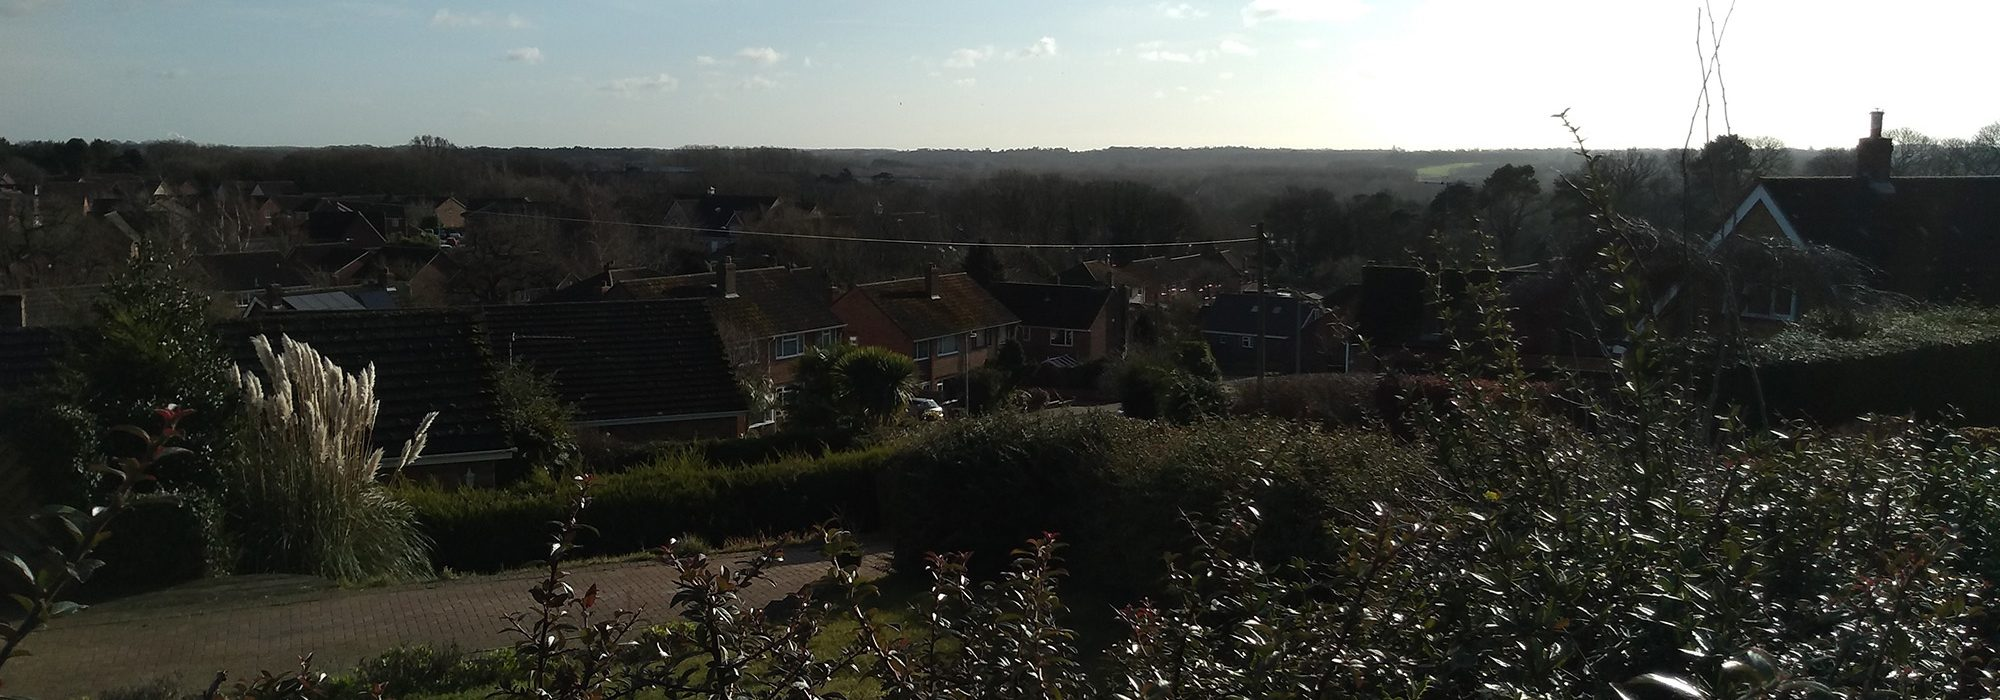 View over Thorpe St Andrew